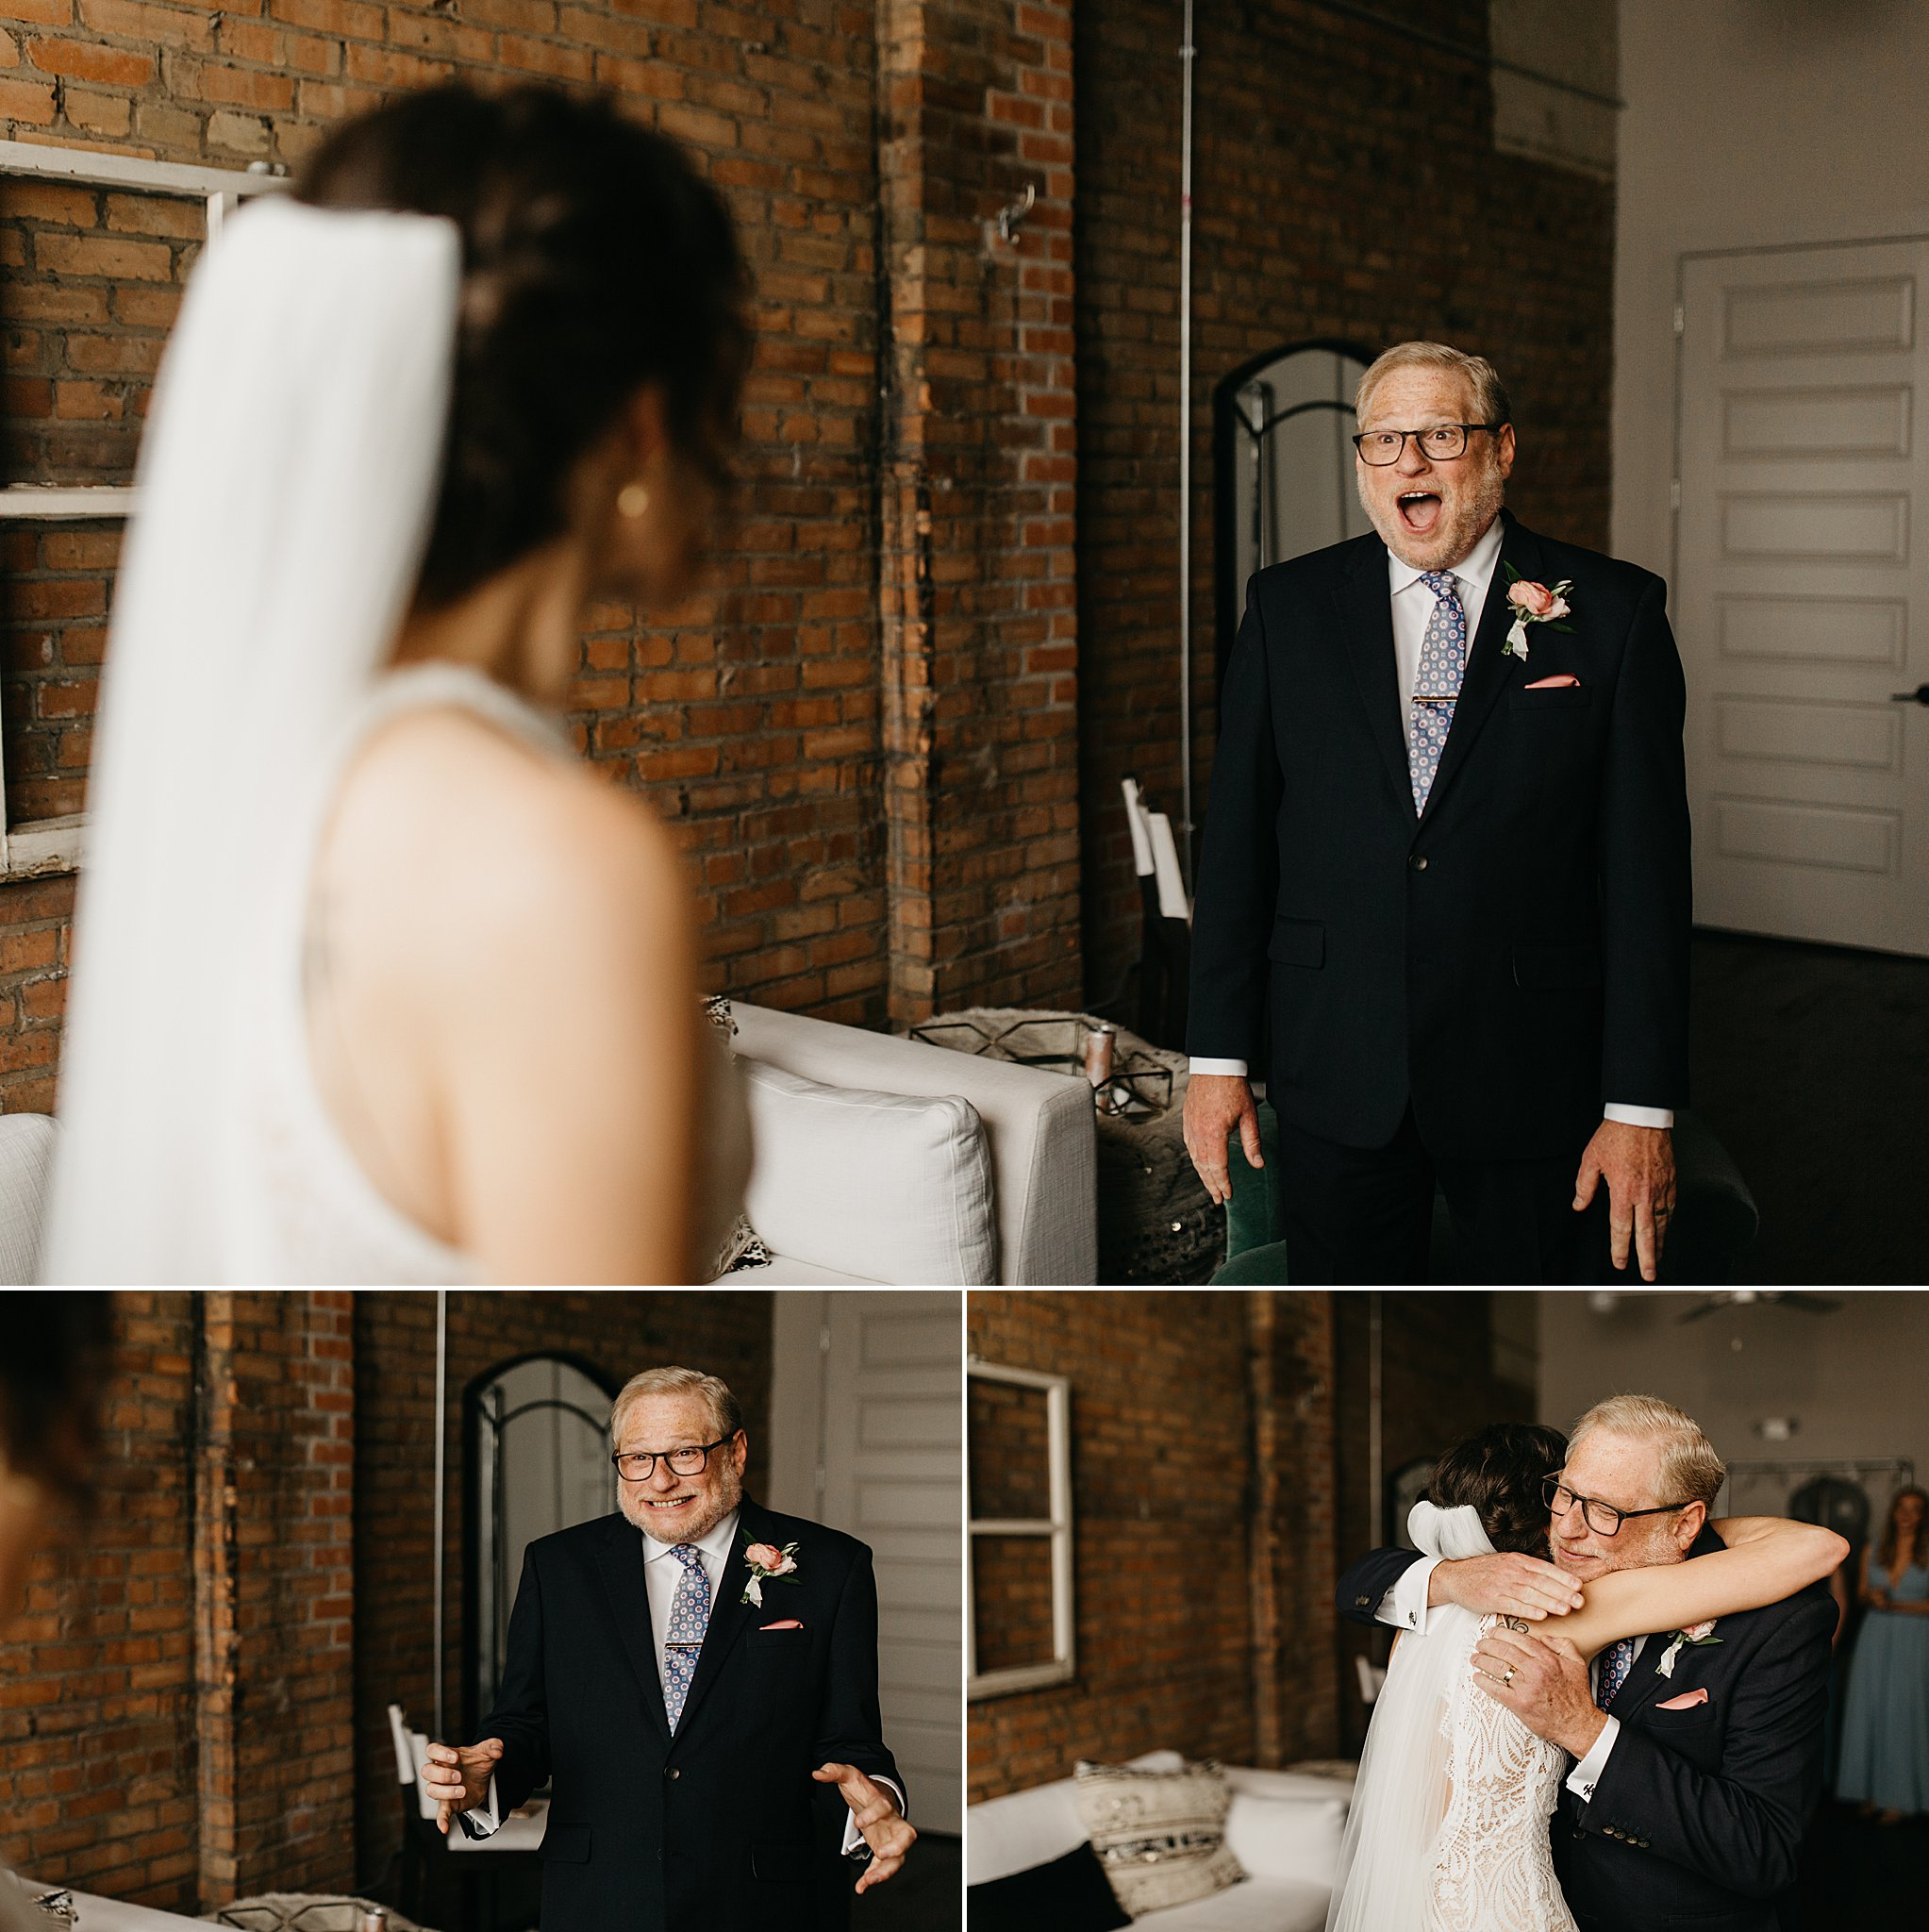 Wilderlove Co_Wedding Photographer_Industrial Wedding_Jewish Wedding_Dallas Texas Wedding_Brake & Clutch Warehouse_North Texas Photographer_0012.jpg